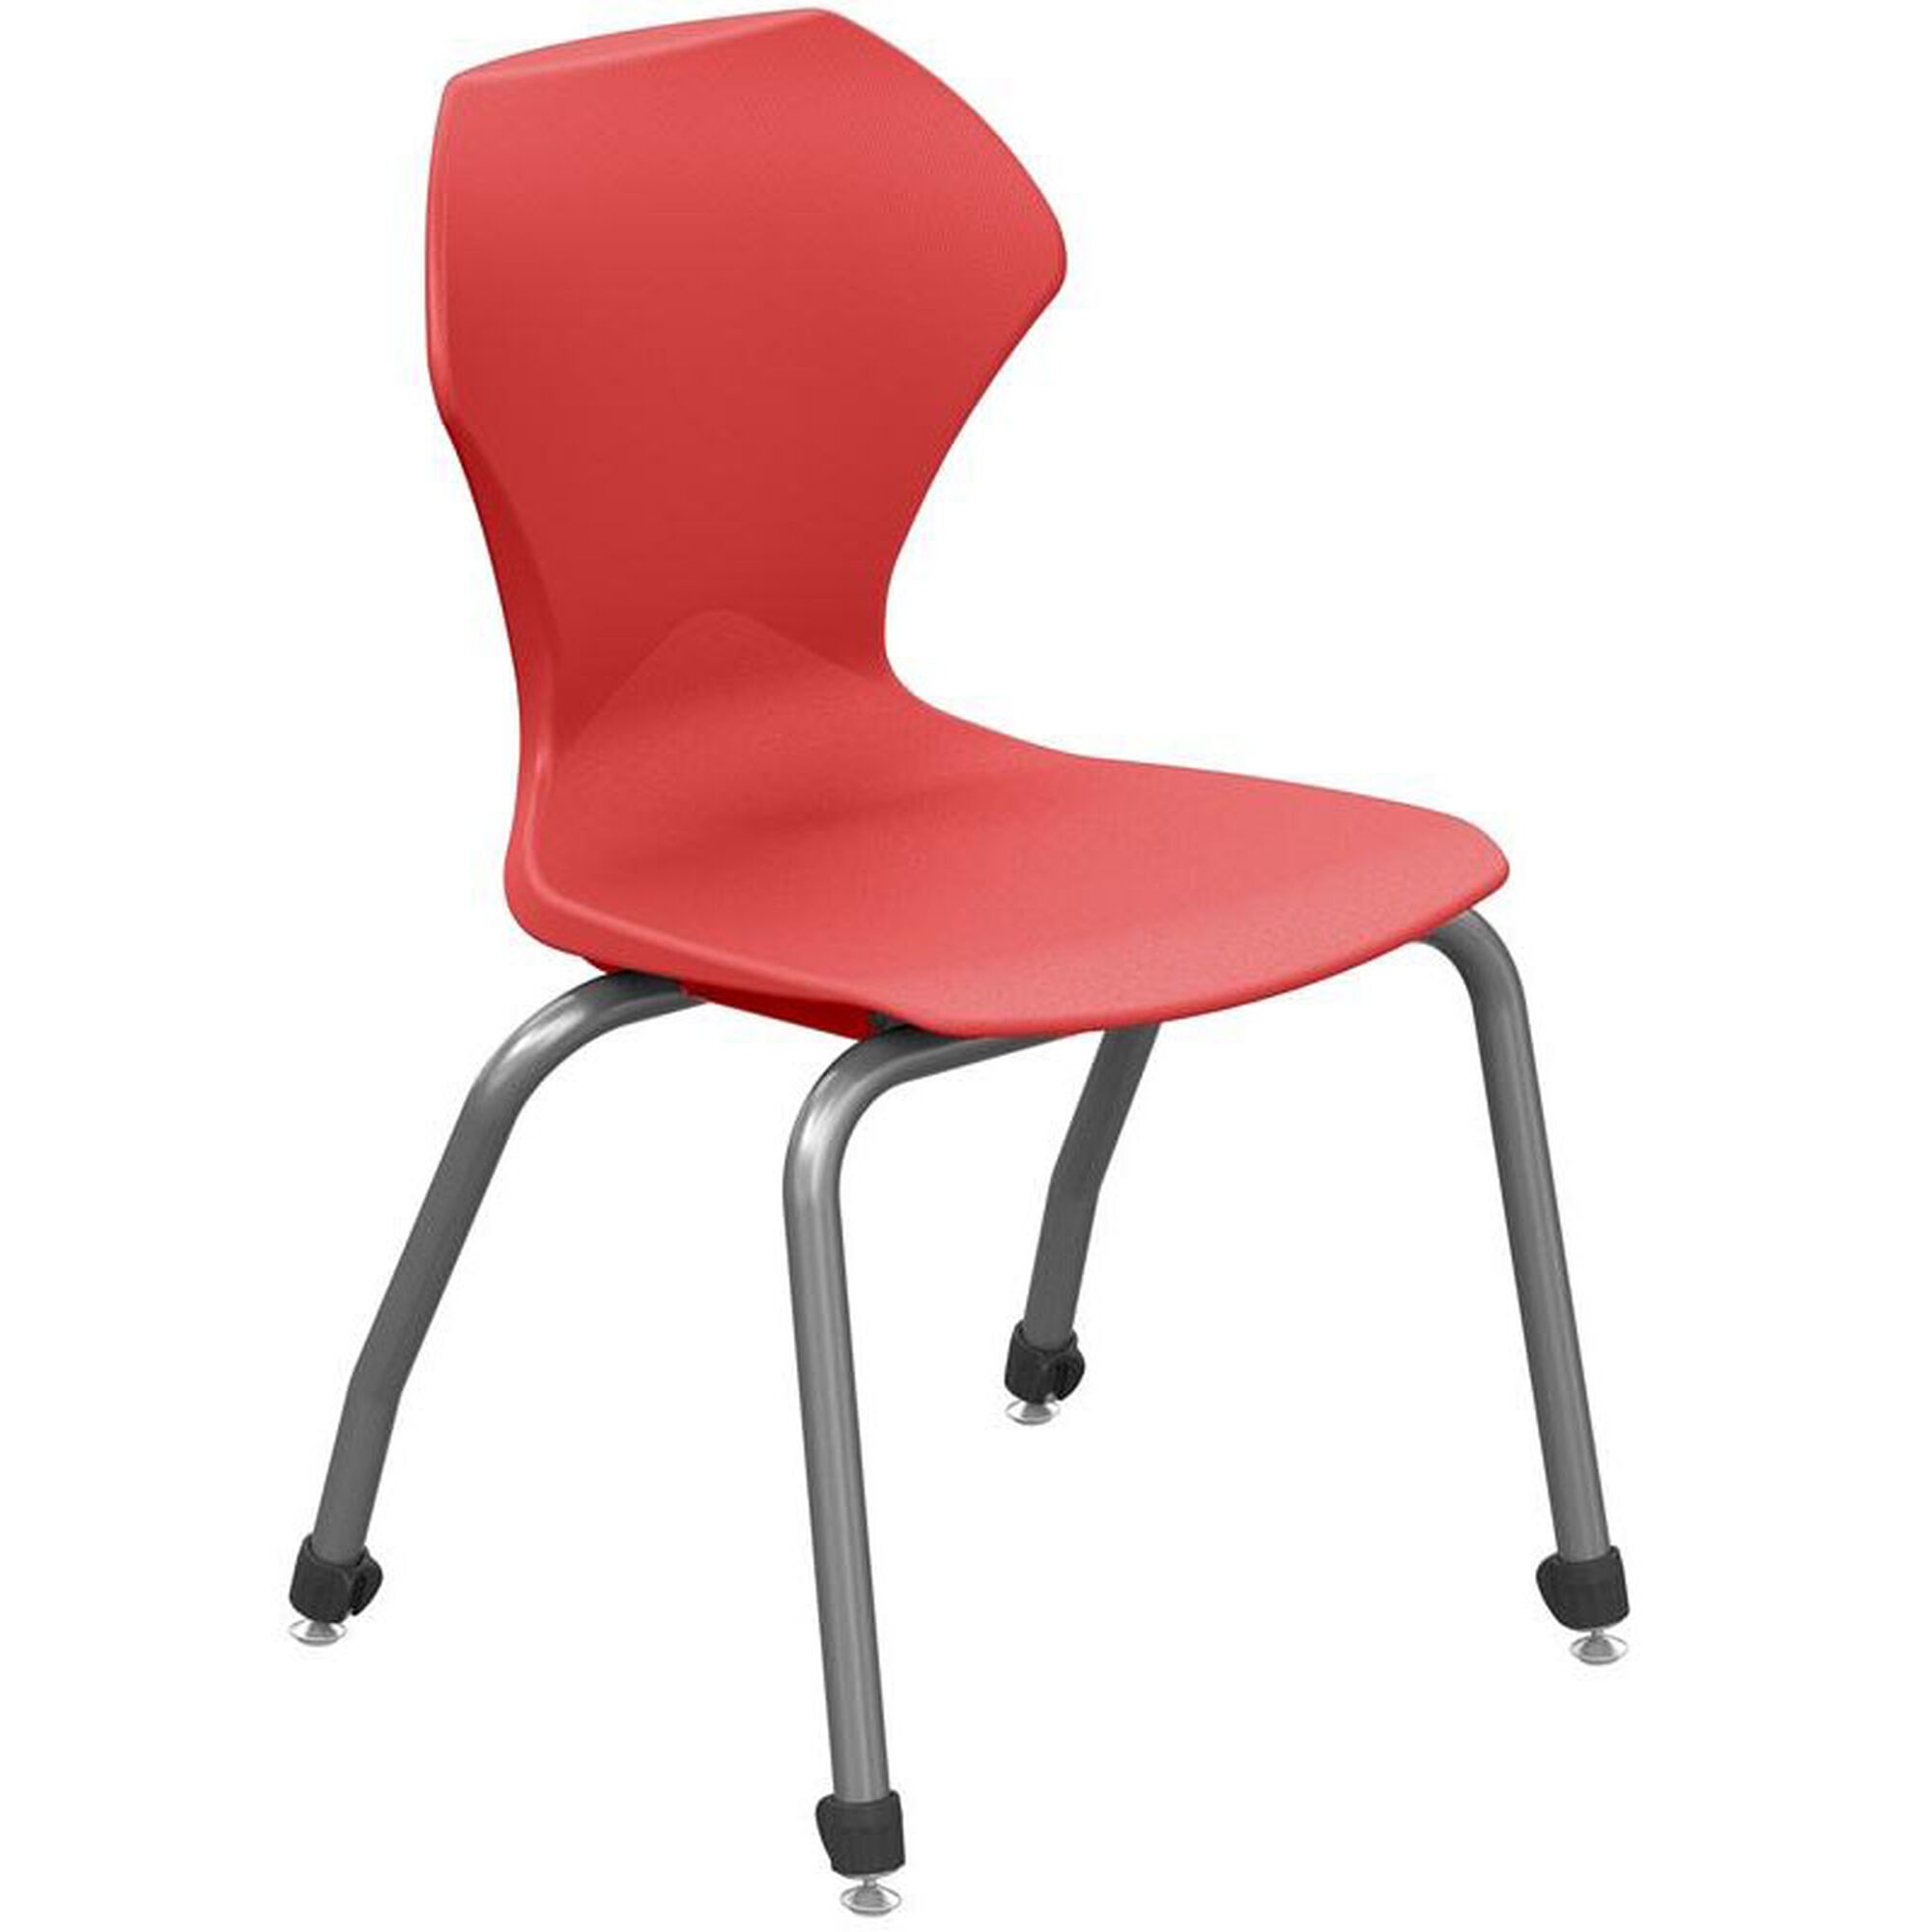 apex red plastic stack chair 38101 16gy ard. Black Bedroom Furniture Sets. Home Design Ideas